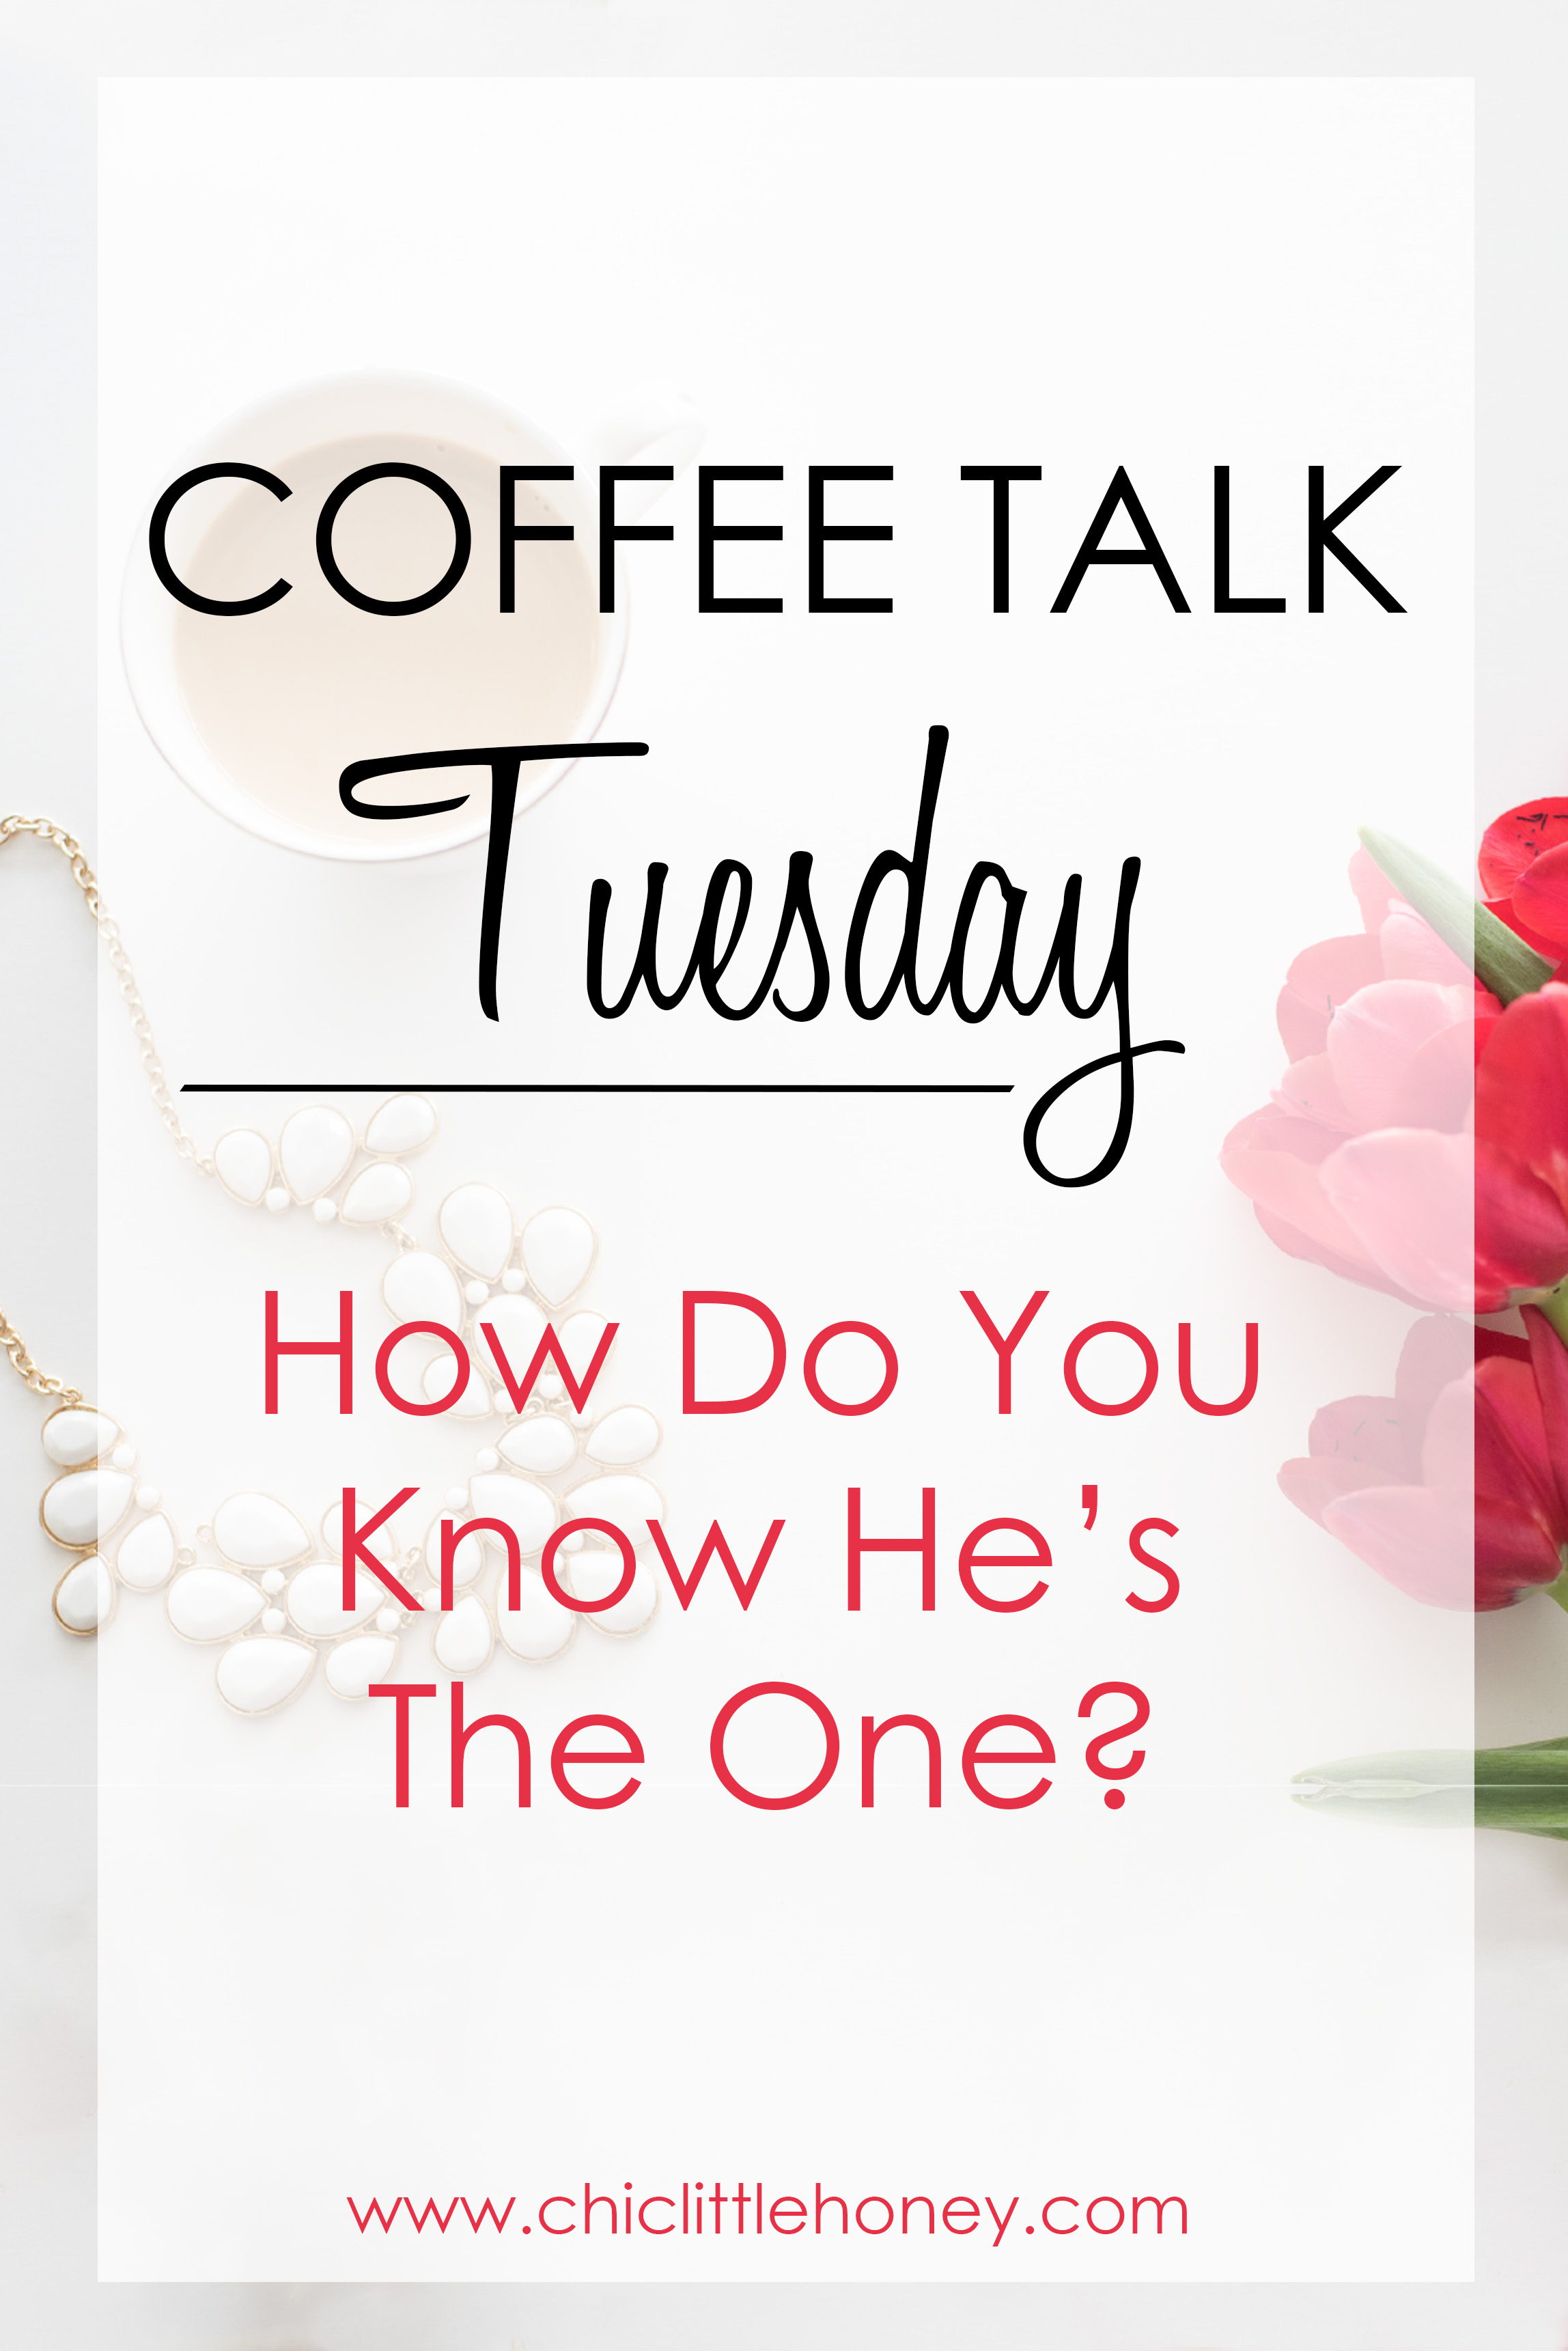 Coffee Talk Tuesday How Do You Know Hes The One Chic Little Honey